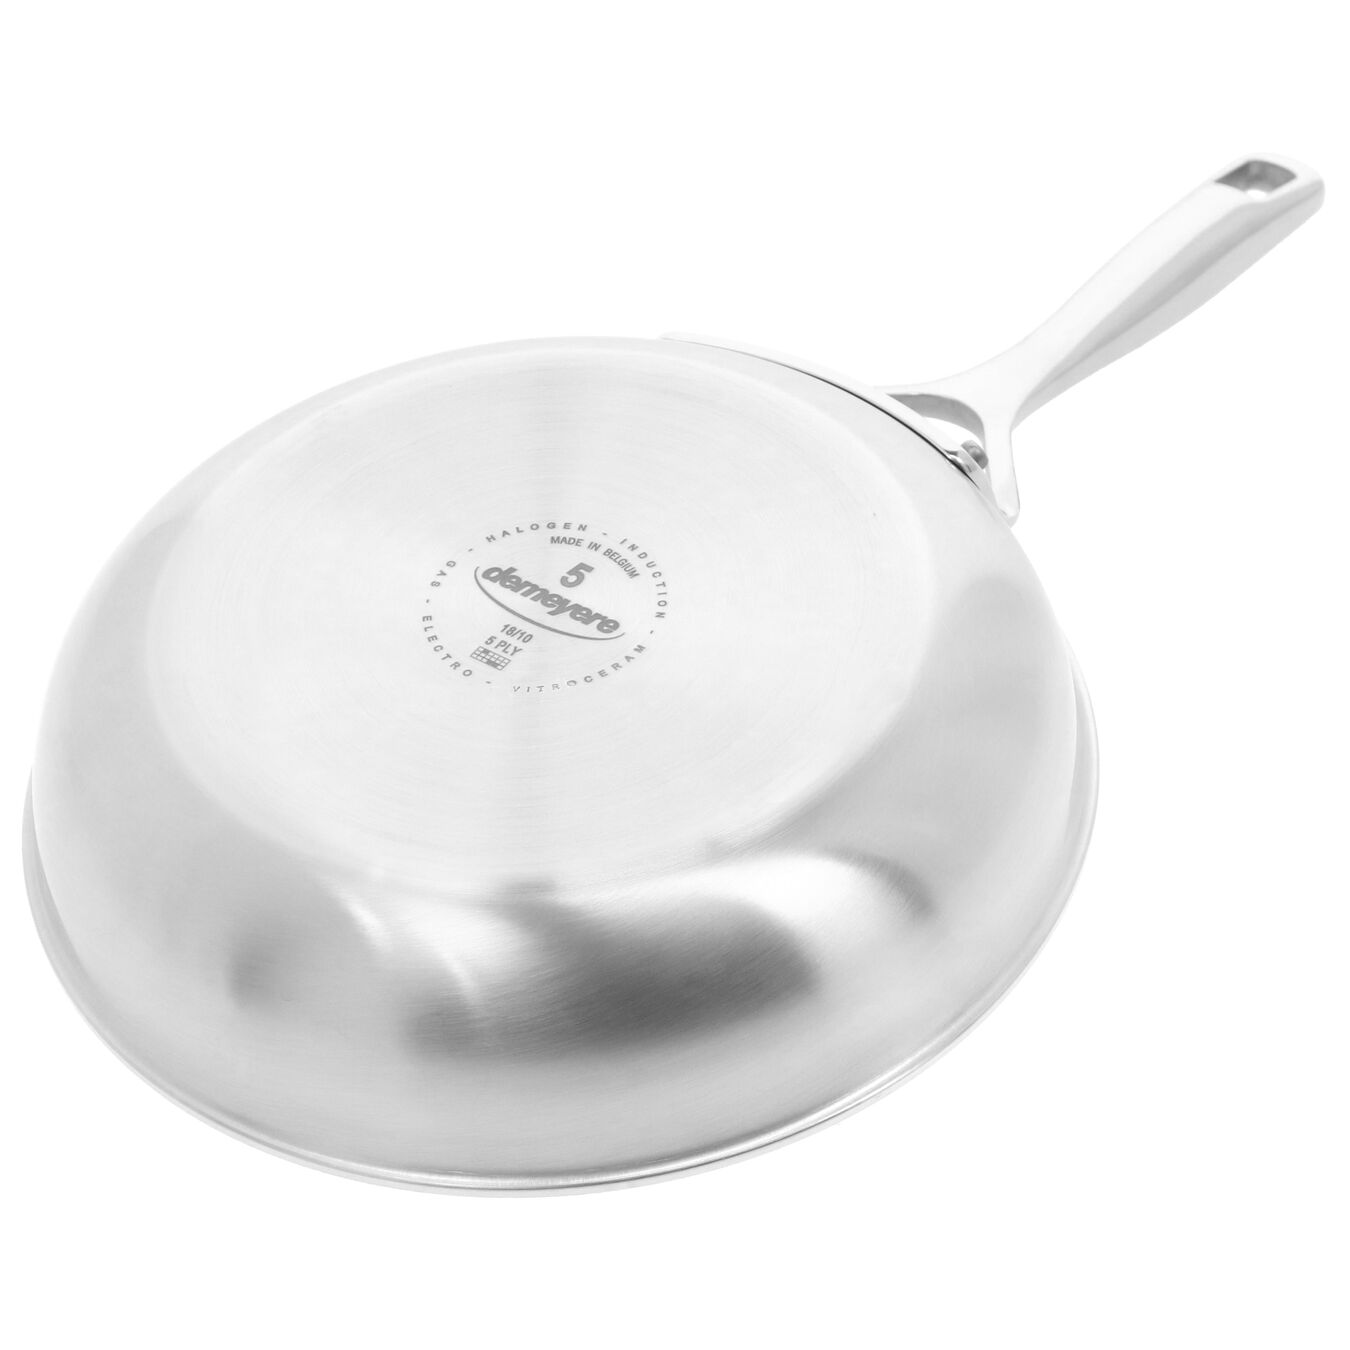 8-inch, 18/10 Stainless Steel, Non-stick, Frying pan,,large 7